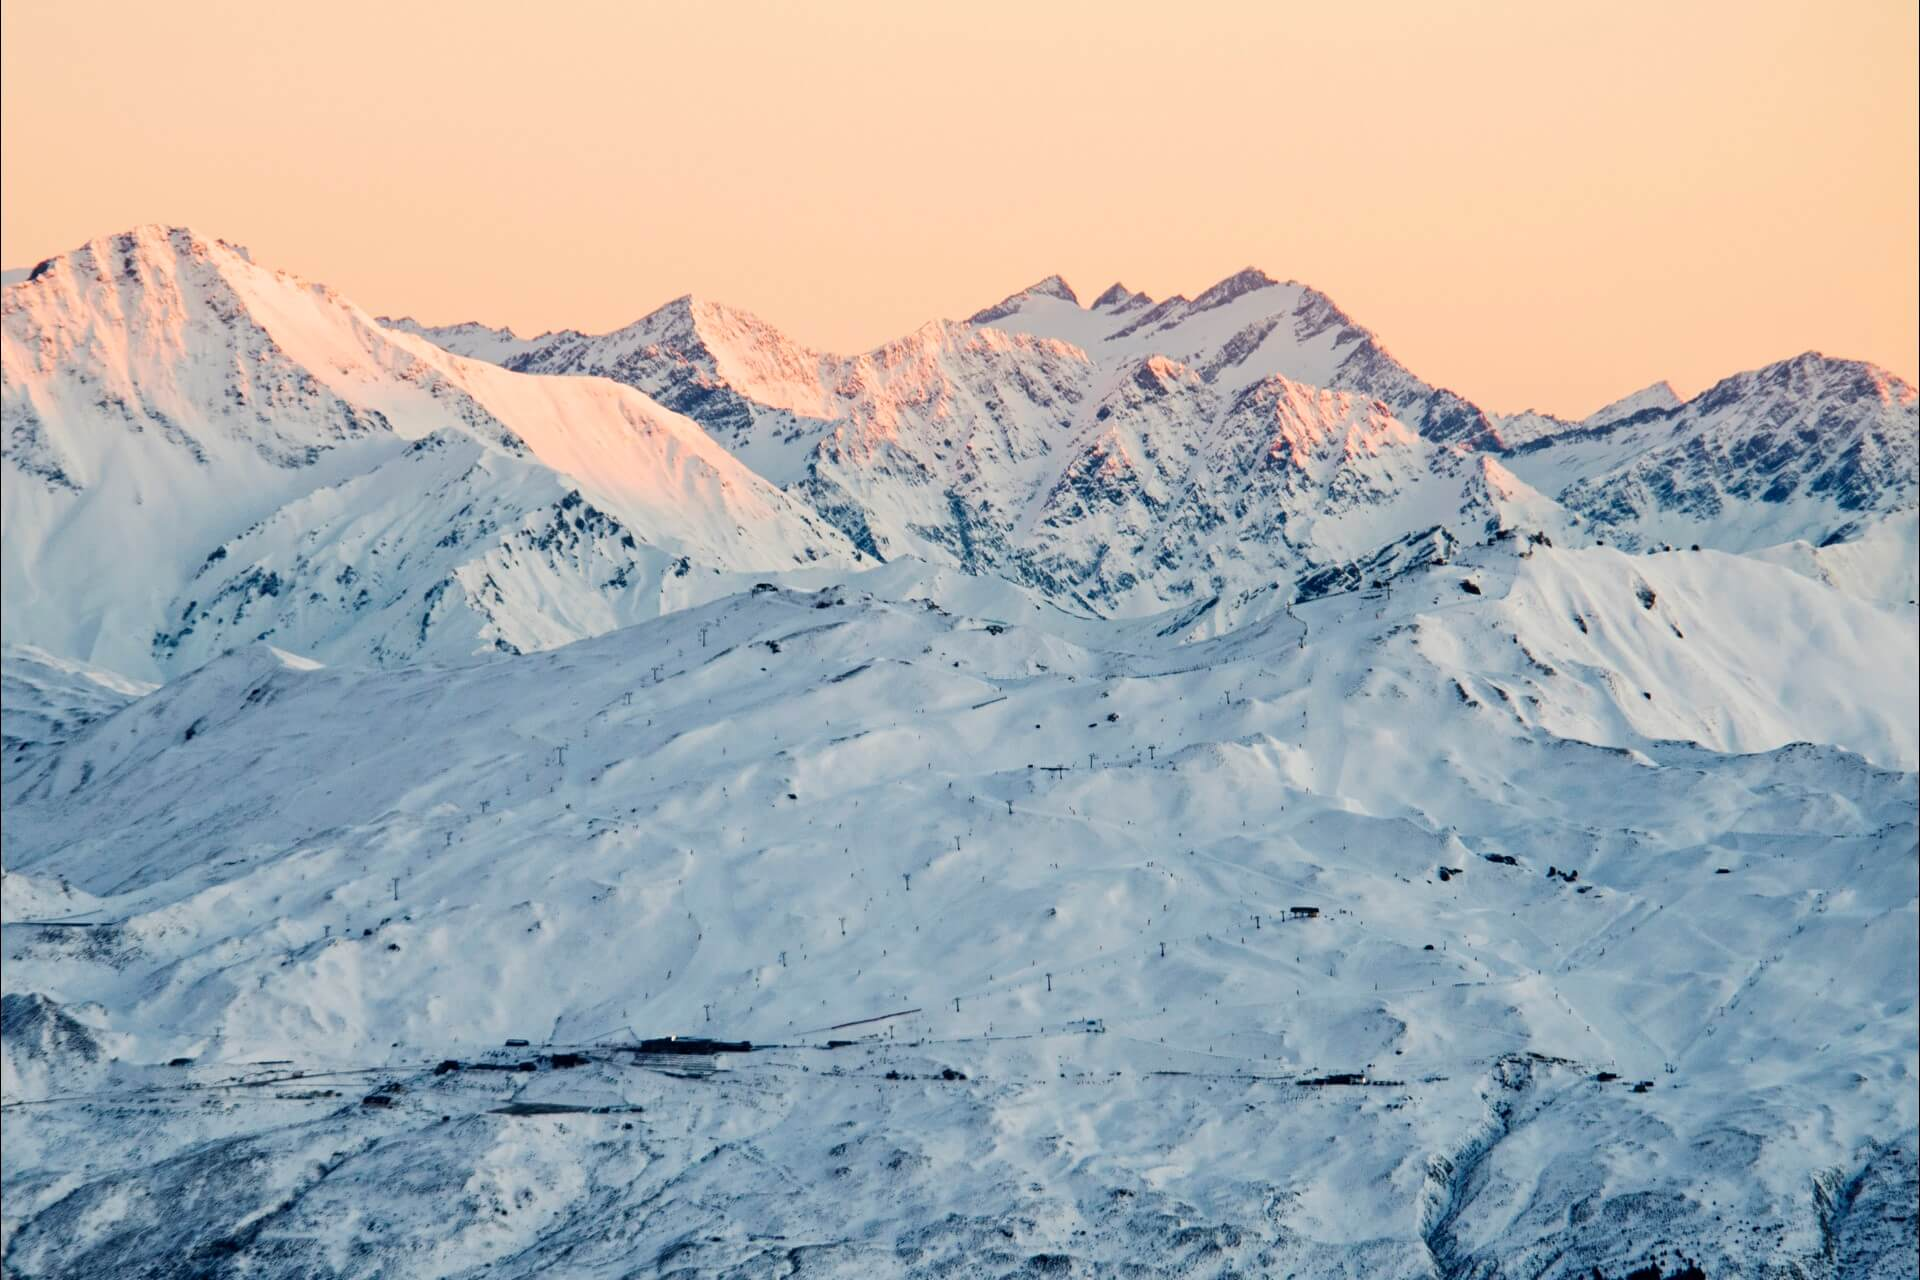 Queenstown_Coronet Peak_Sunrise from Remarks_Brandon Stanley(1920x1280)